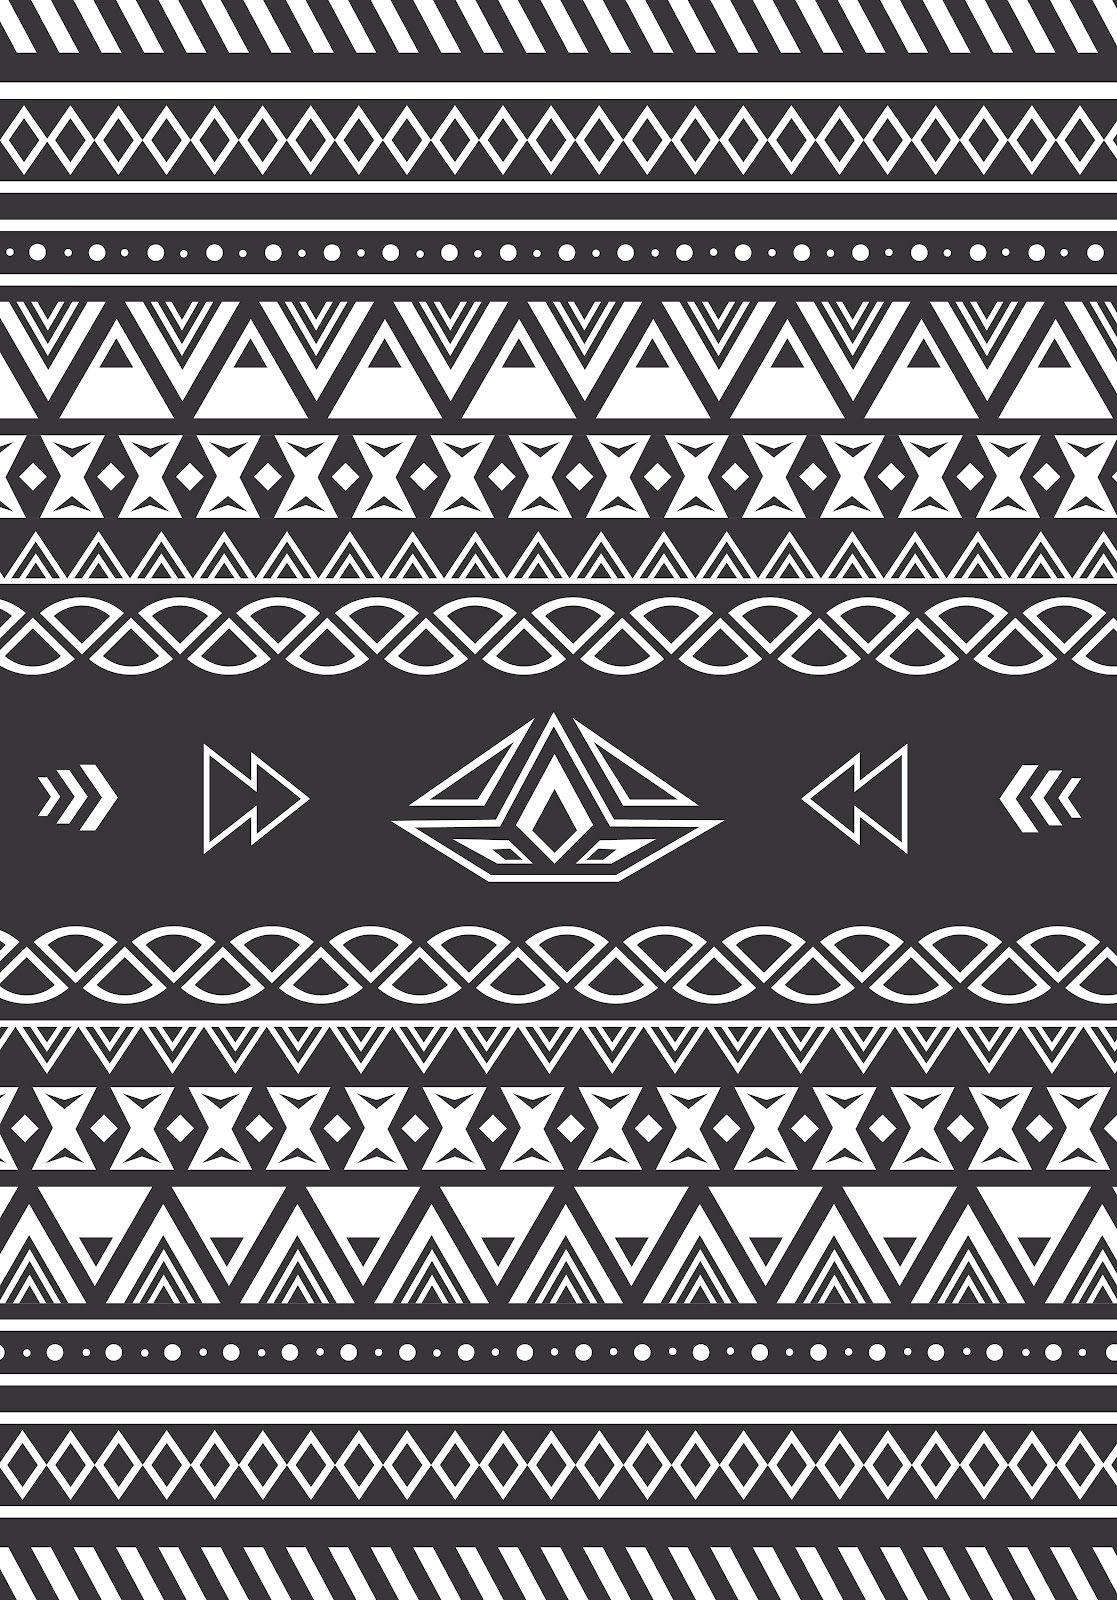 swapiinthehouse: Aztec Pattern | Patterns | Pinterest ...